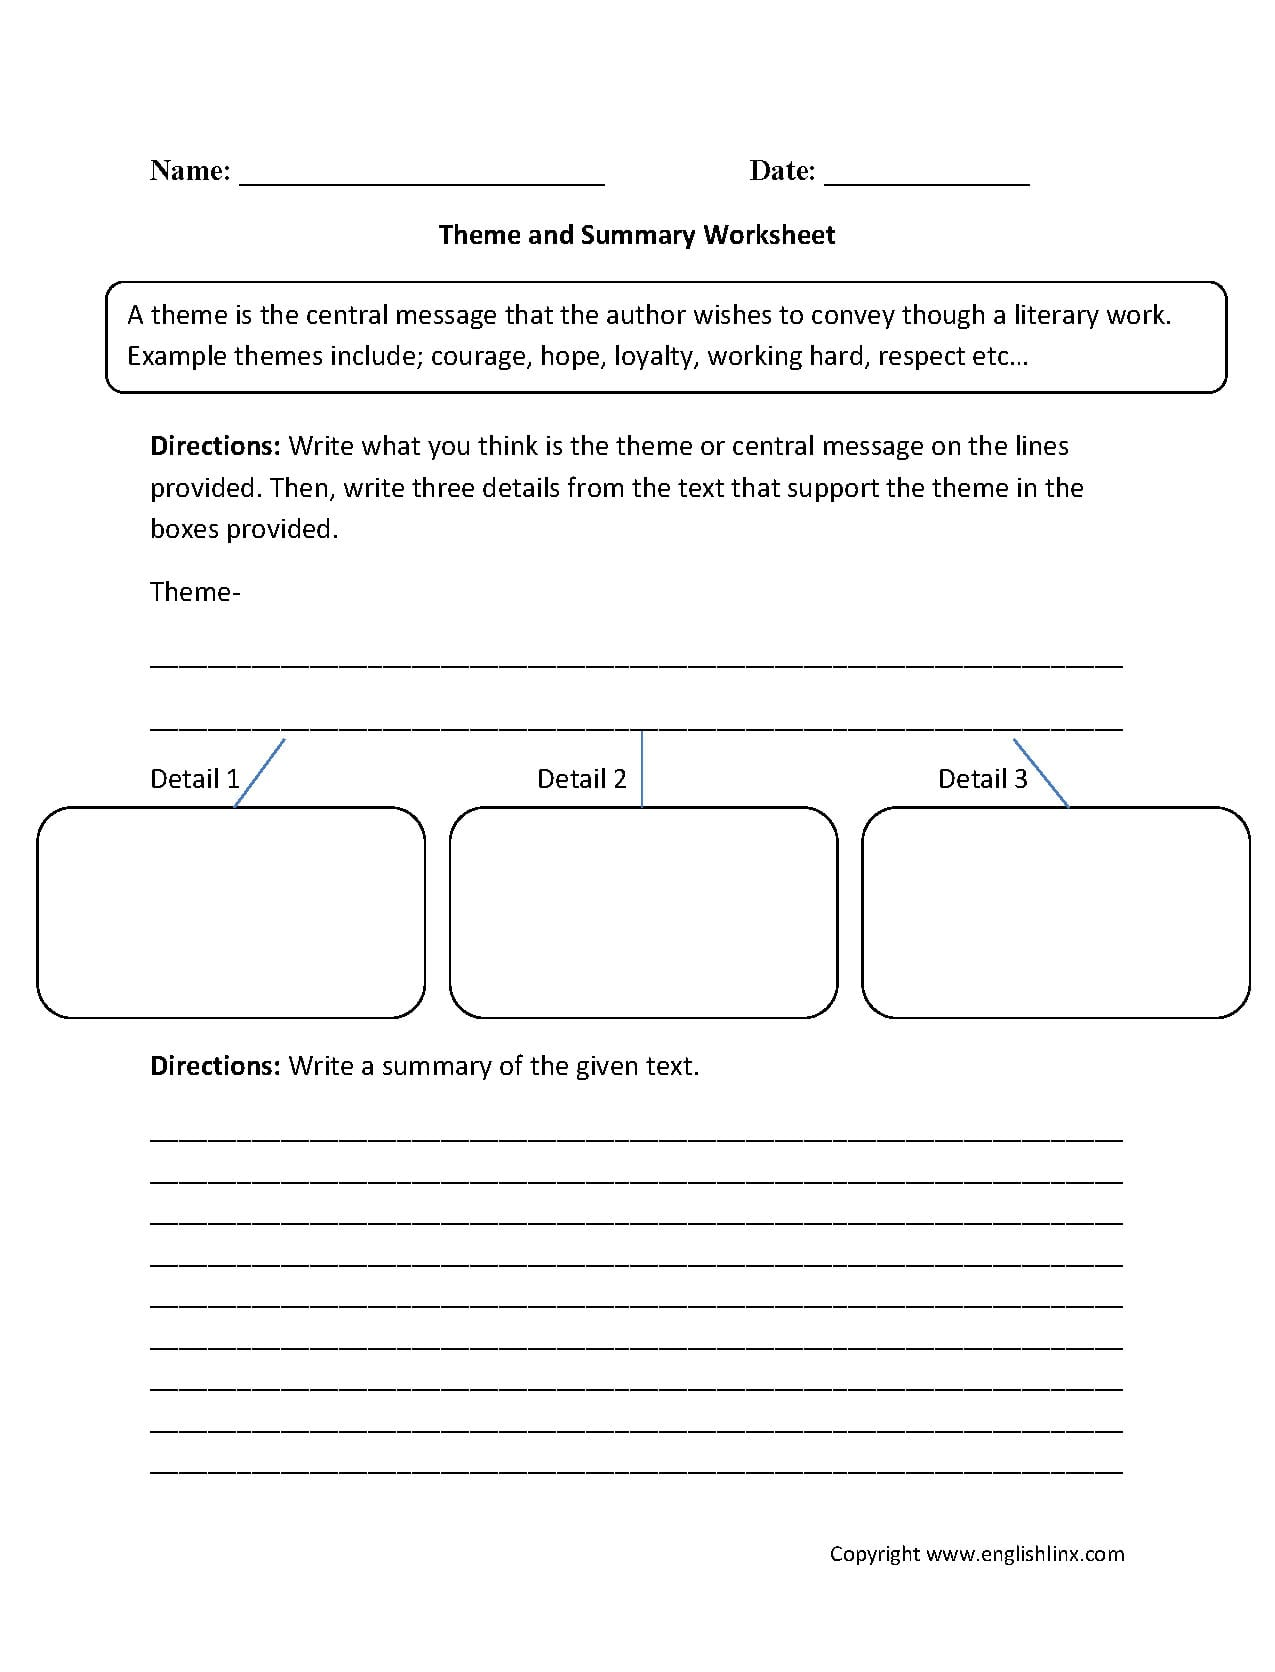 Englishlinx  Theme Worksheets Within Theme Worksheets 4Th Grade